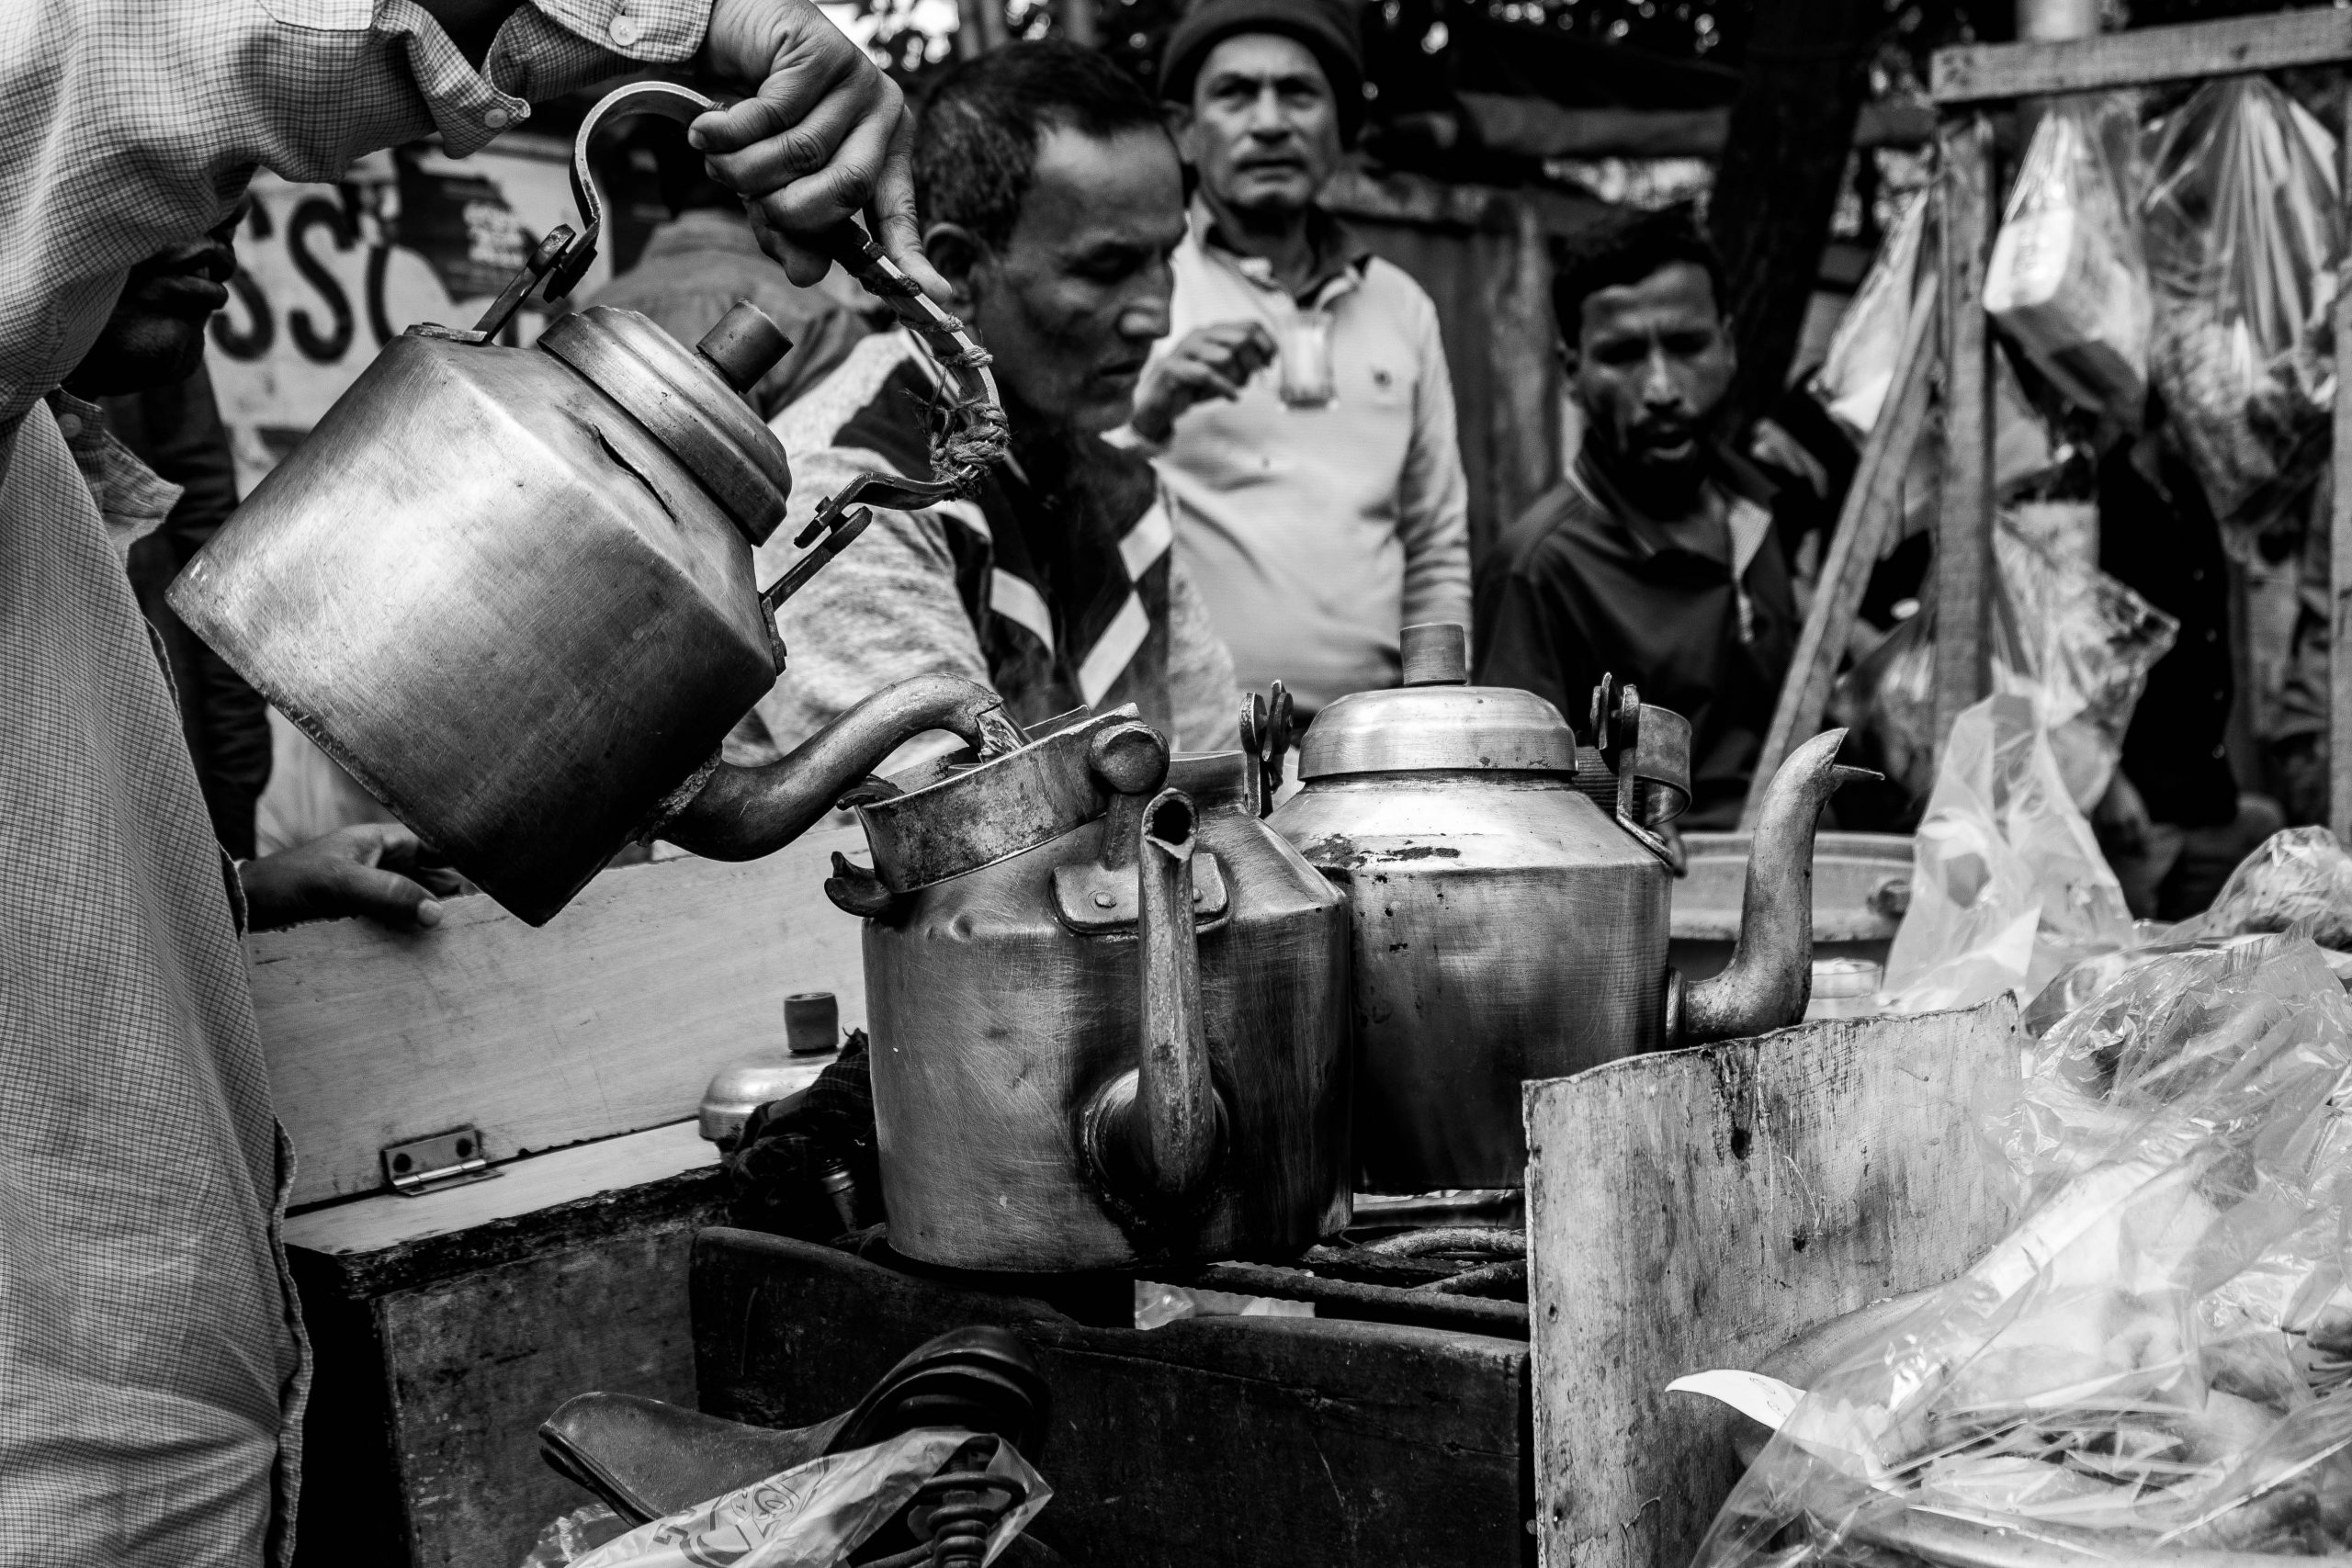 Photo: Chai. Image of kettles and men pouring chai